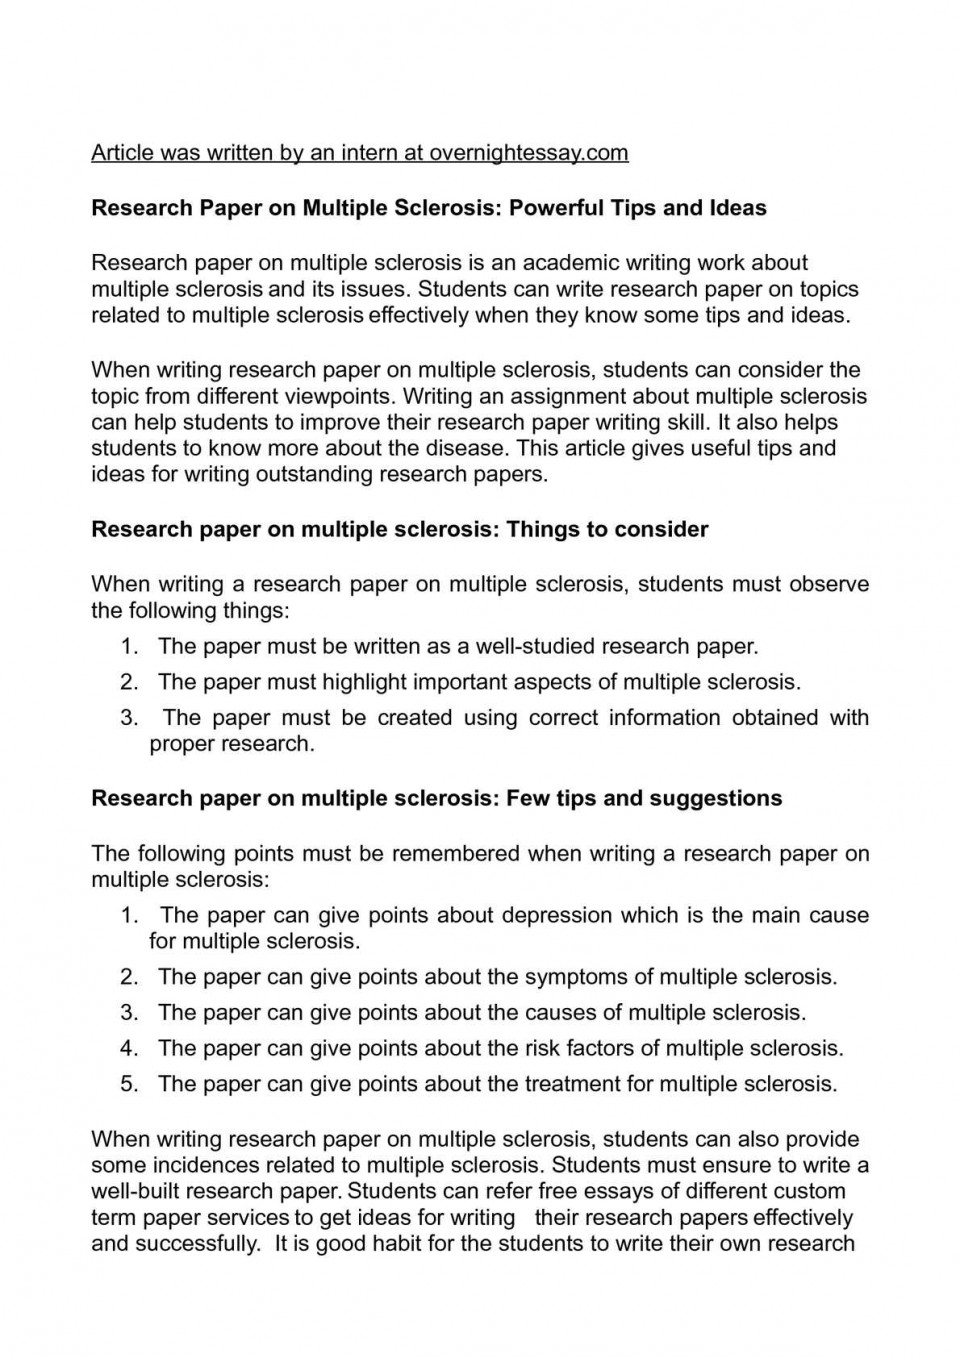 015 Research Paper How To Write Breathtaking Objectives An Abstract For English A Conclusion Apa 960